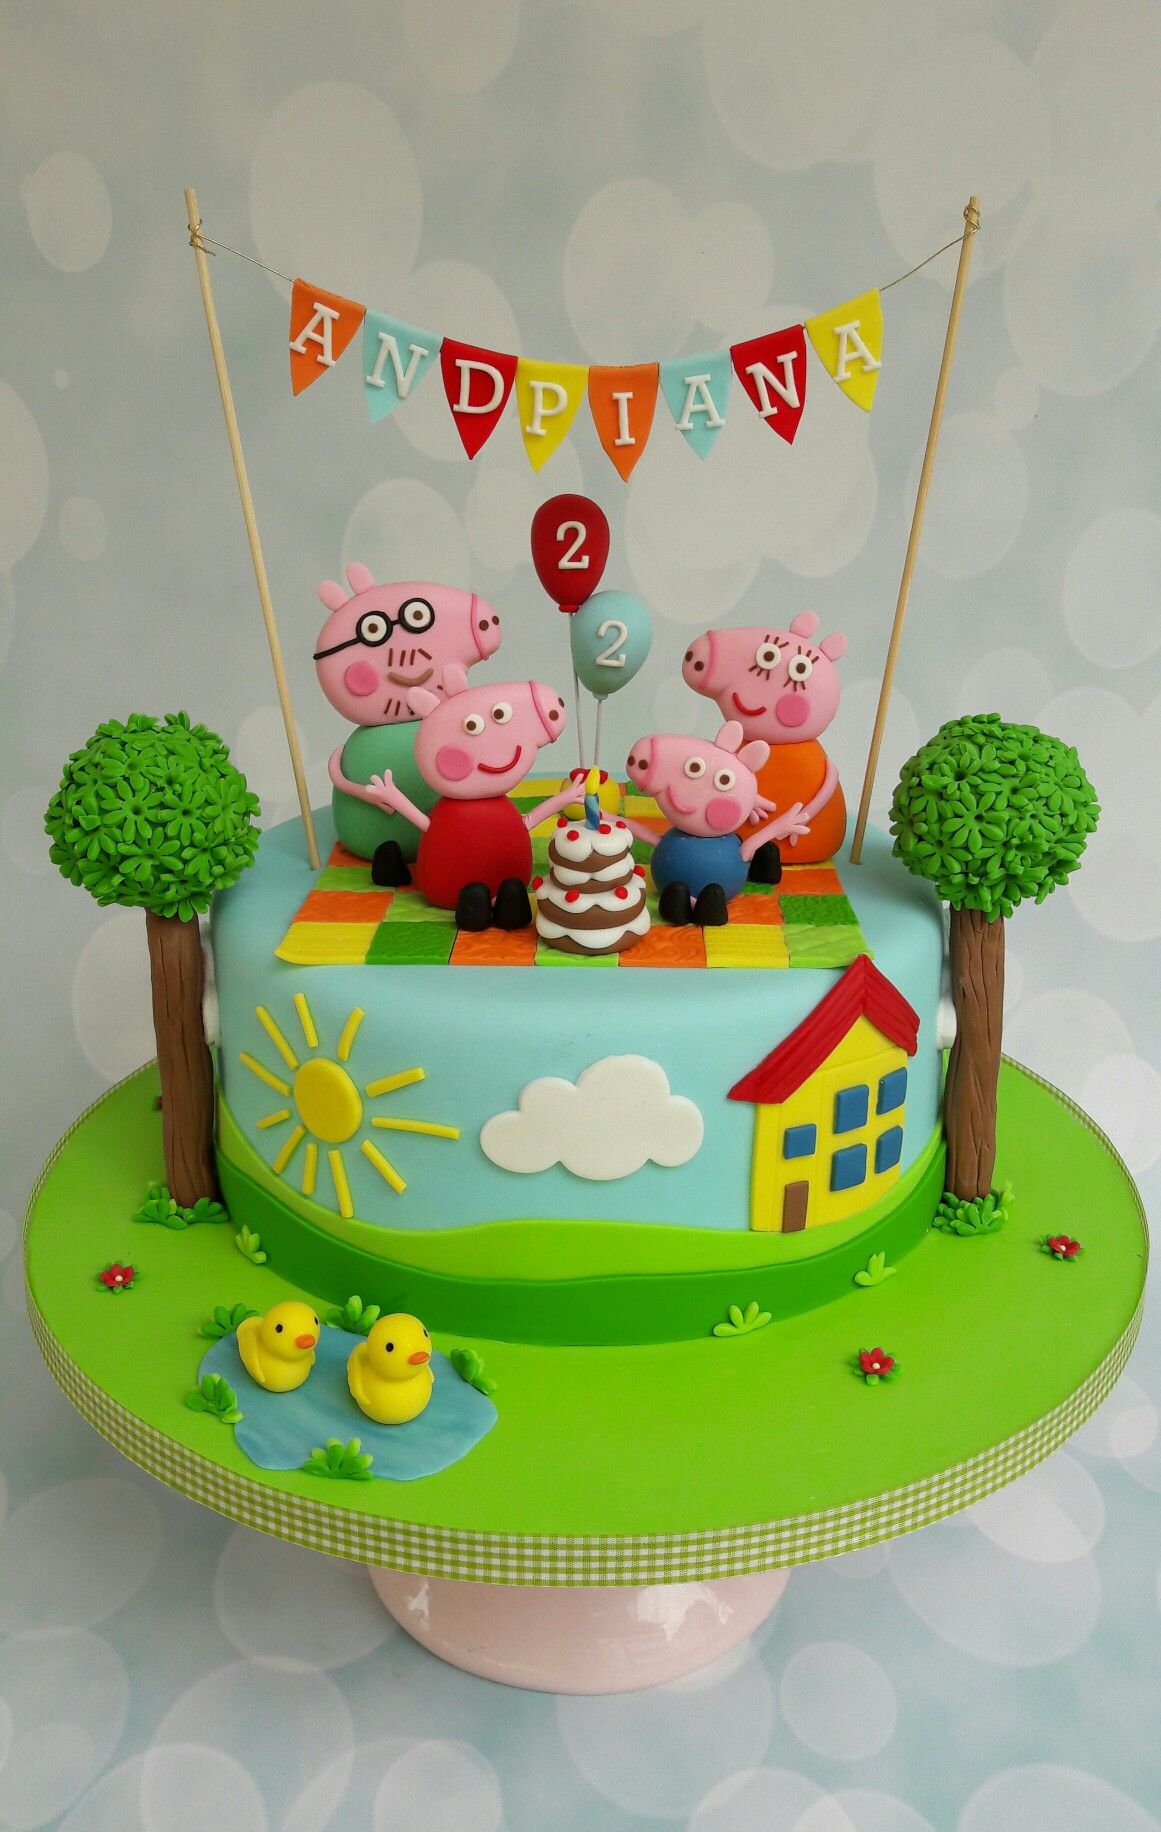 Swell Peppa Pig And Family Birthday Cake With Images Peppa Pig Personalised Birthday Cards Paralily Jamesorg